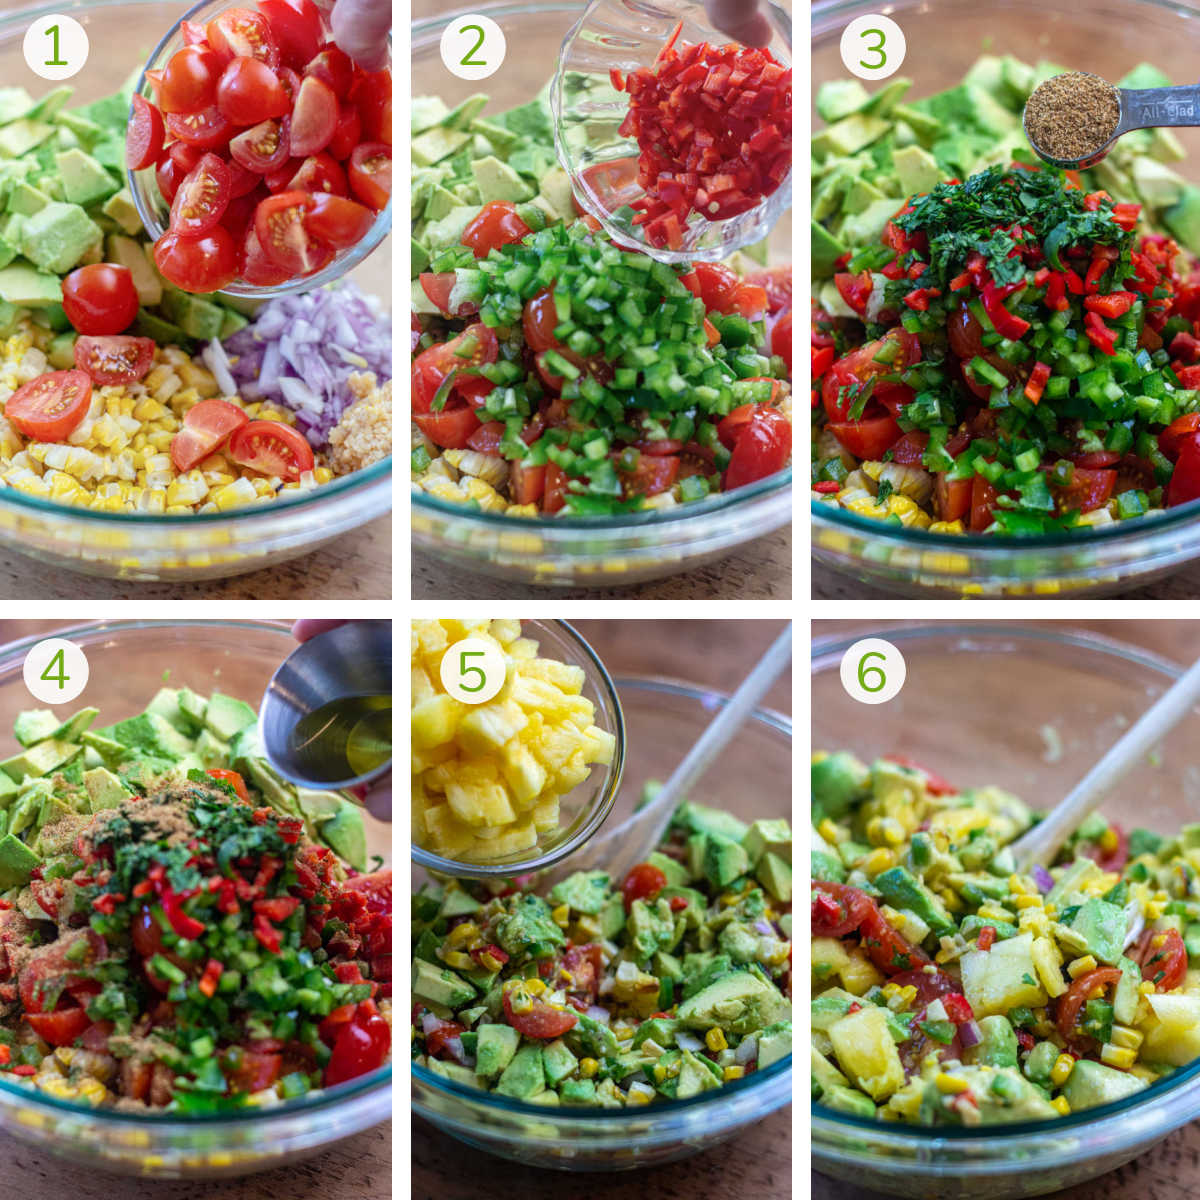 process photos showing how to combine all of the ingredients to make the grilled corn and avocado salsa.